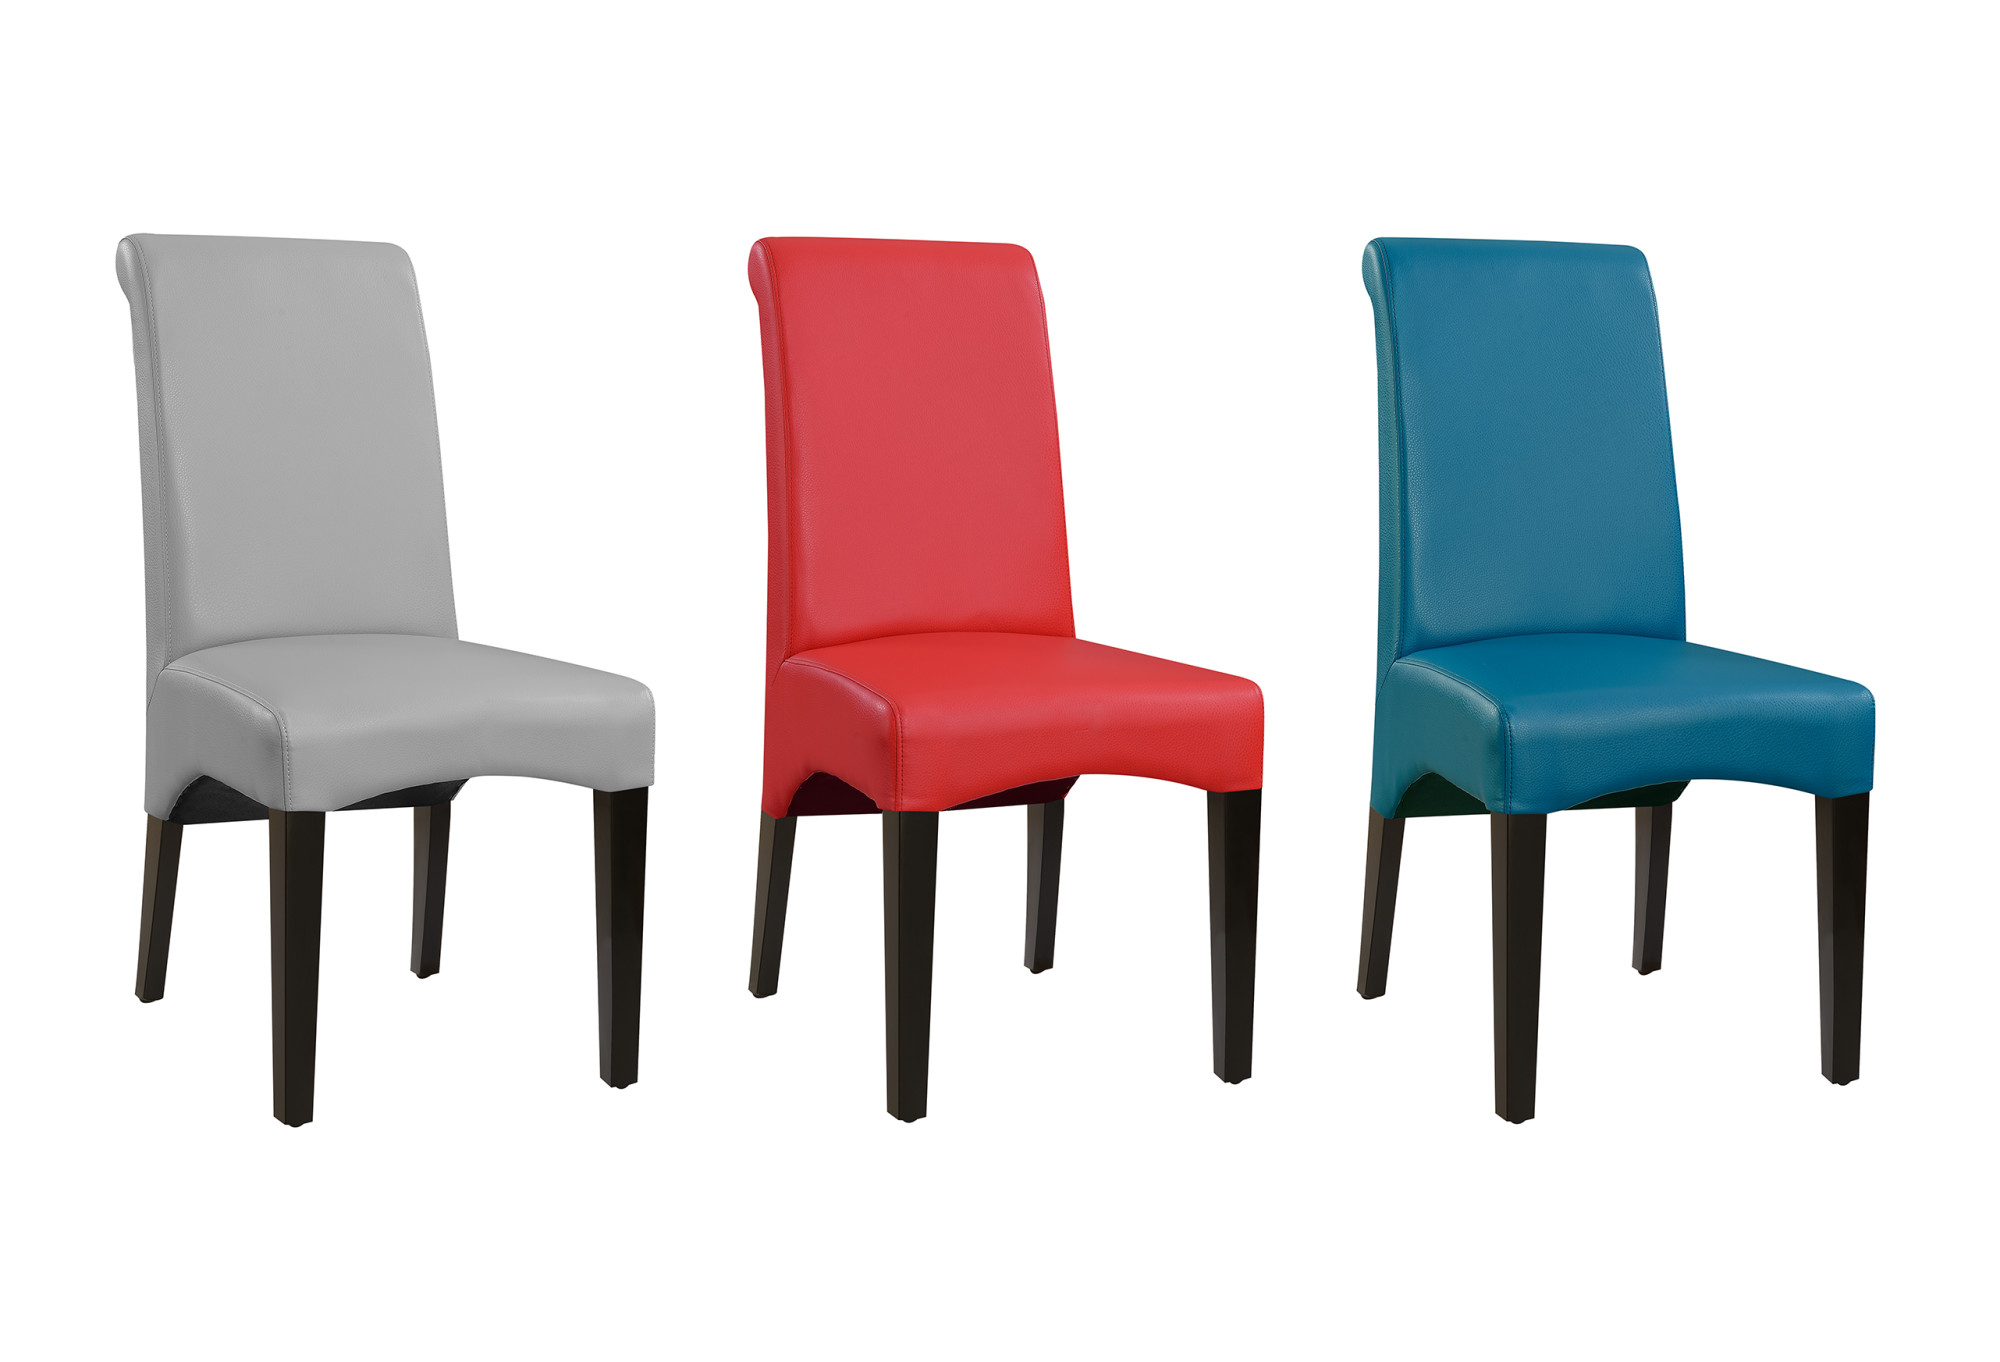 Picture of: Emerald Home Briar Ii Teal Blue Upholstered Dining Chair With Faux Leather Upholstery And Curved Back Set Of Two Walmart Com Walmart Com